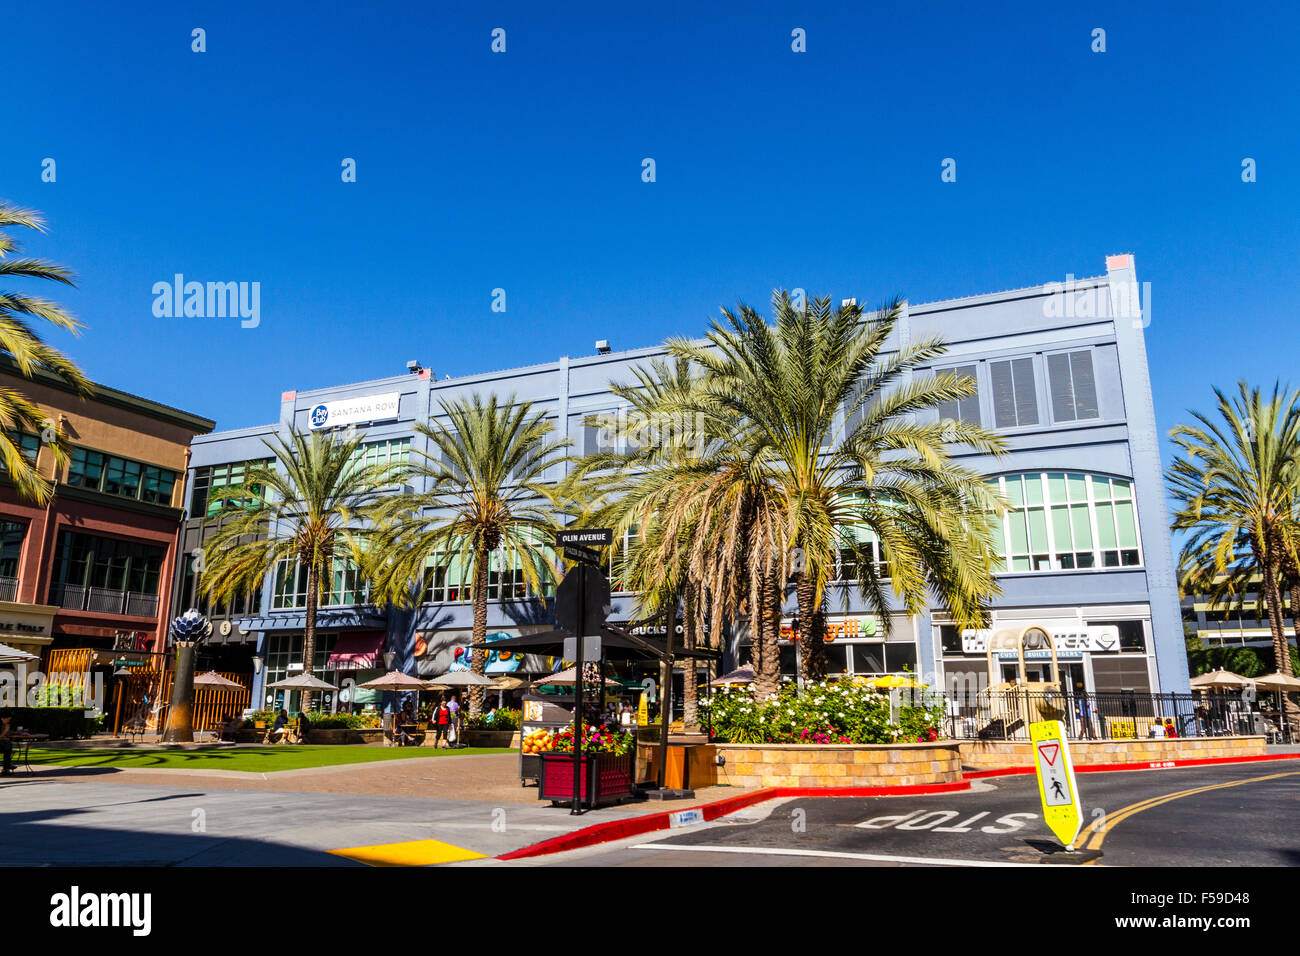 Mall Food Shopping Usa Stockfotos & Mall Food Shopping Usa Bilder ...